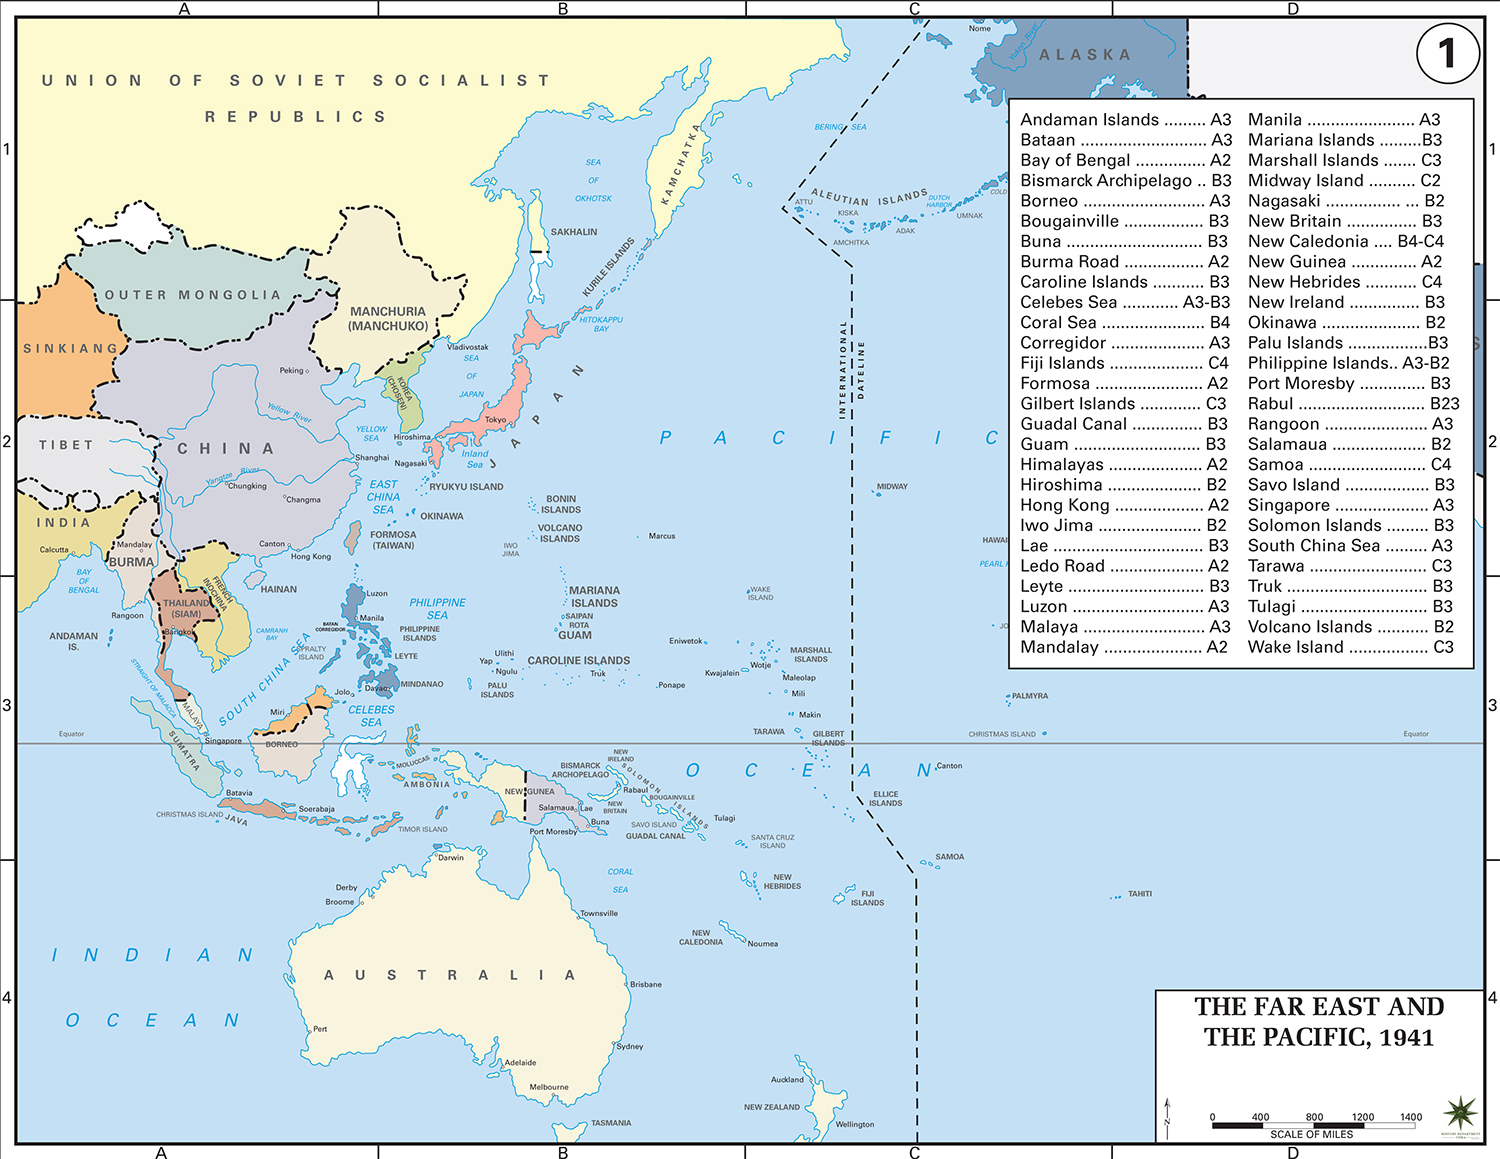 History Map of WWII: The Far East and the Pacific 1941